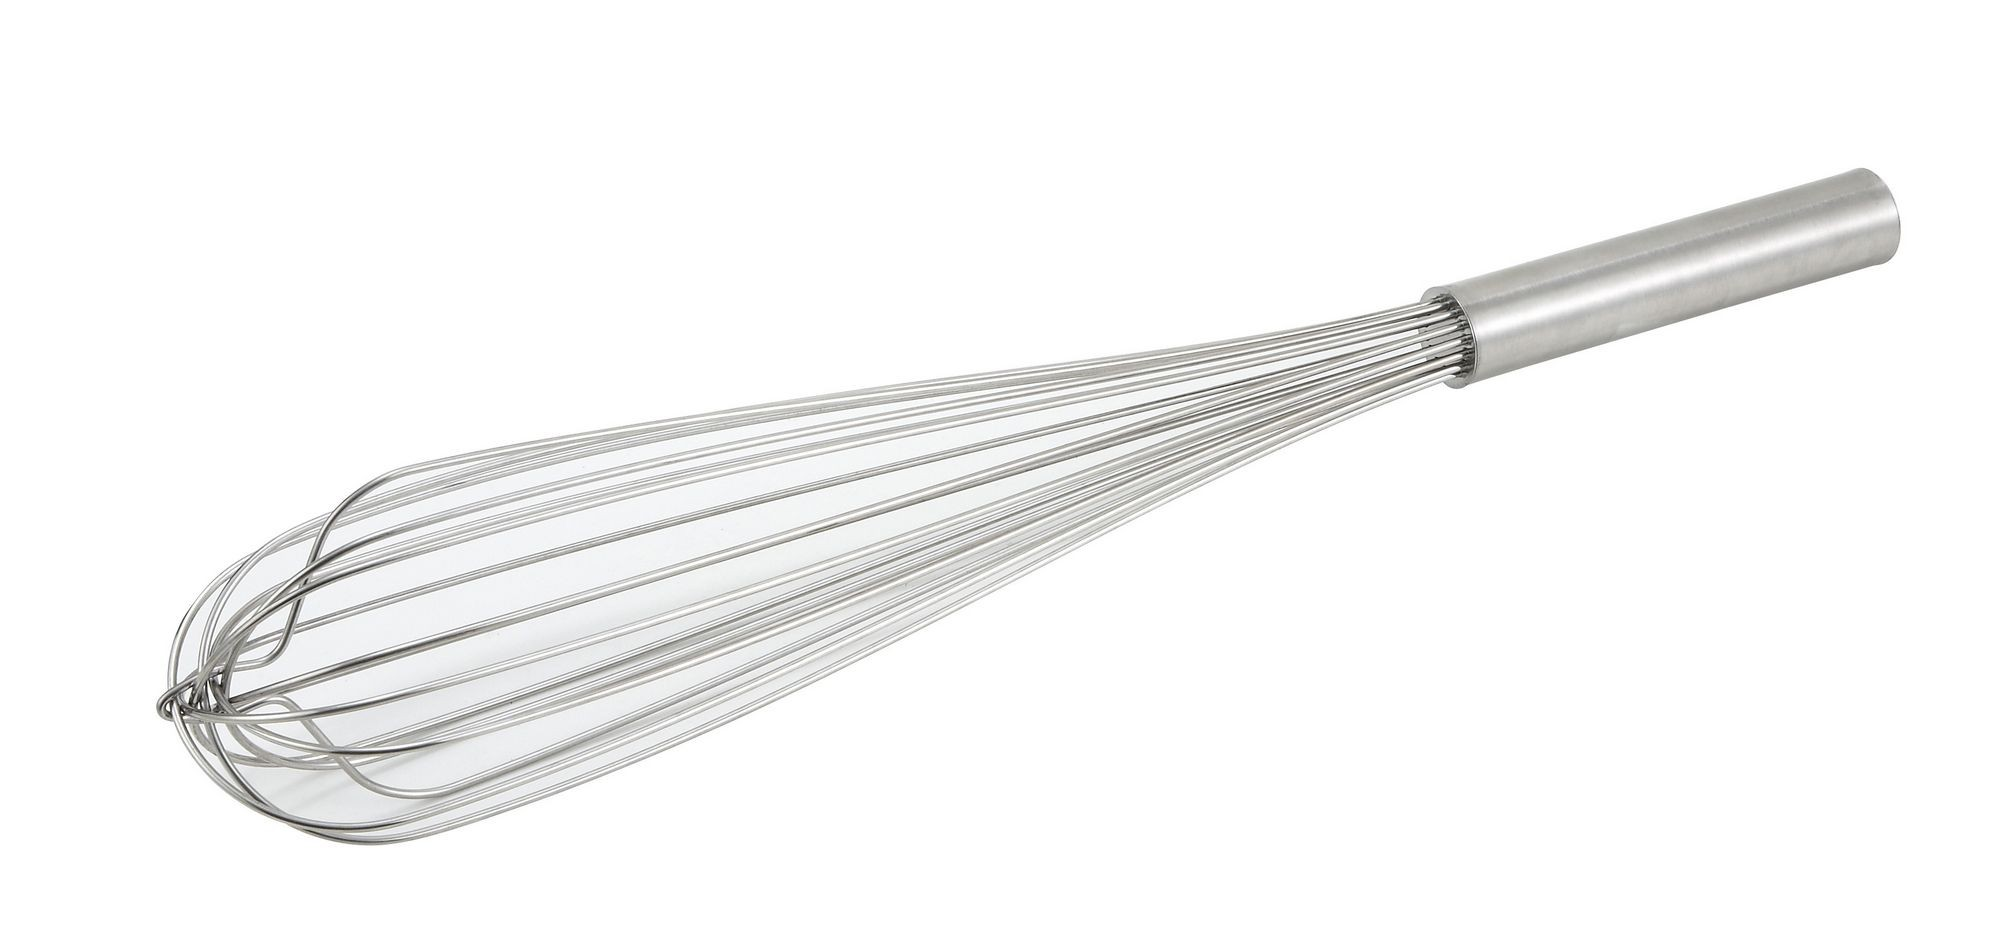 Stainless Steel French Whip - 10 Long